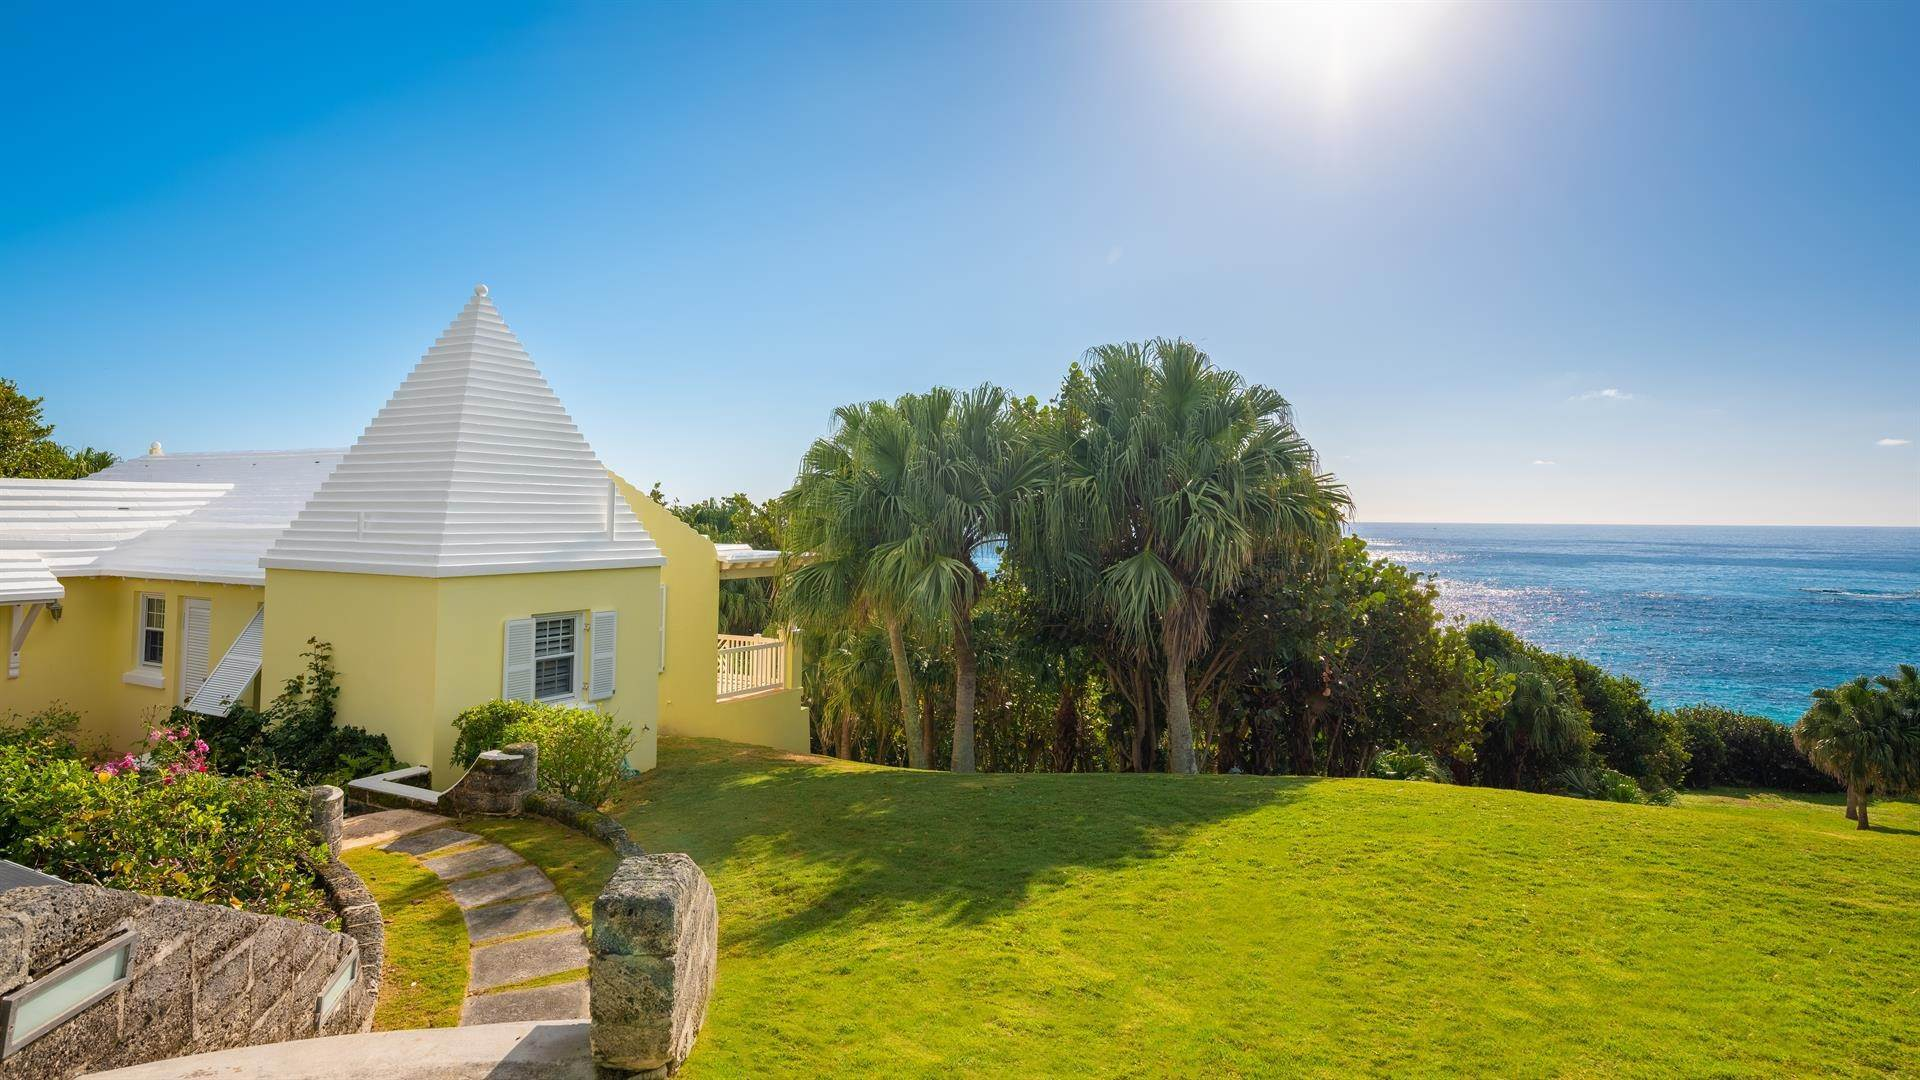 35. Waterfront Property for Sale at Agapanthus On Grape Bay Agapanthus On Grape Bay, 11 Inglewood Lane,Bermuda – Sinclair Realty